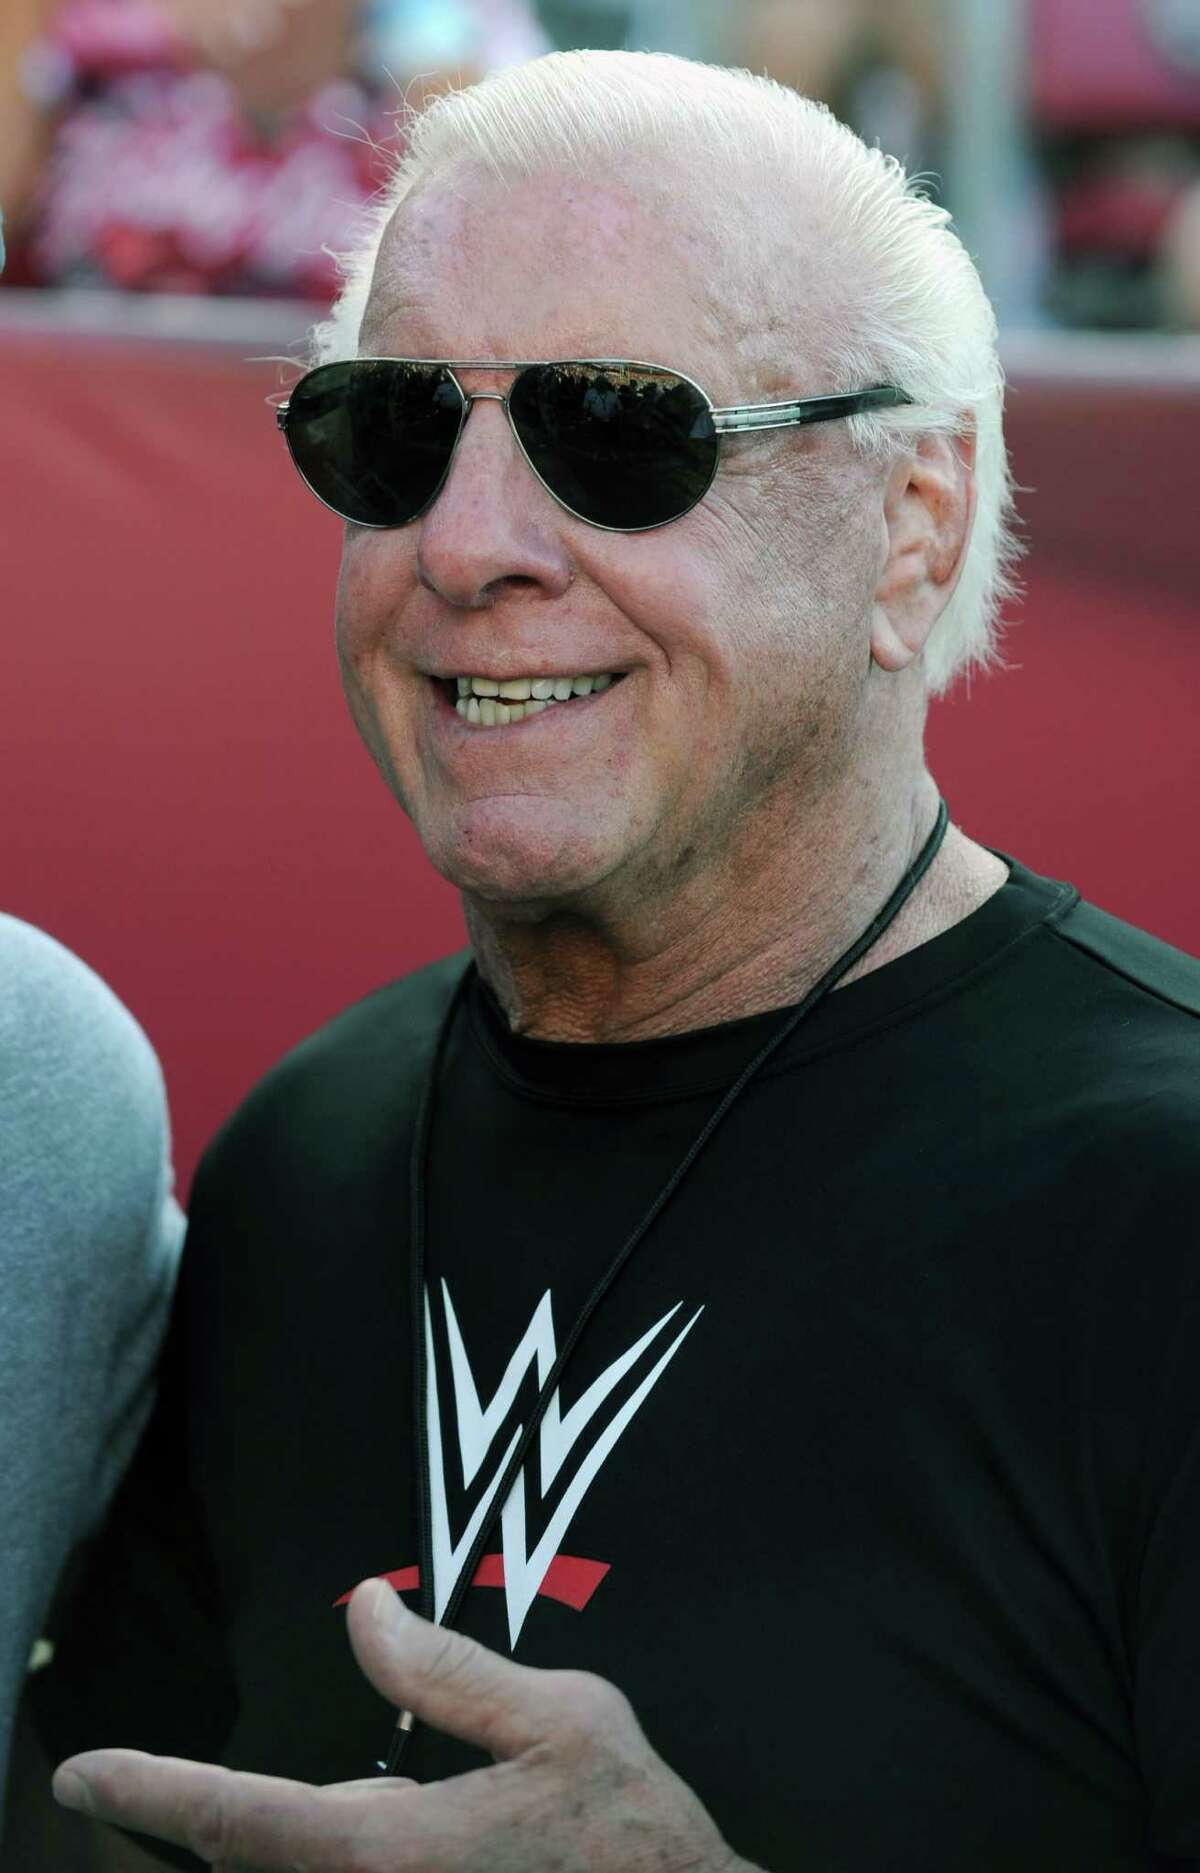 Former professional wrestler Ric Flair poses for photographs.